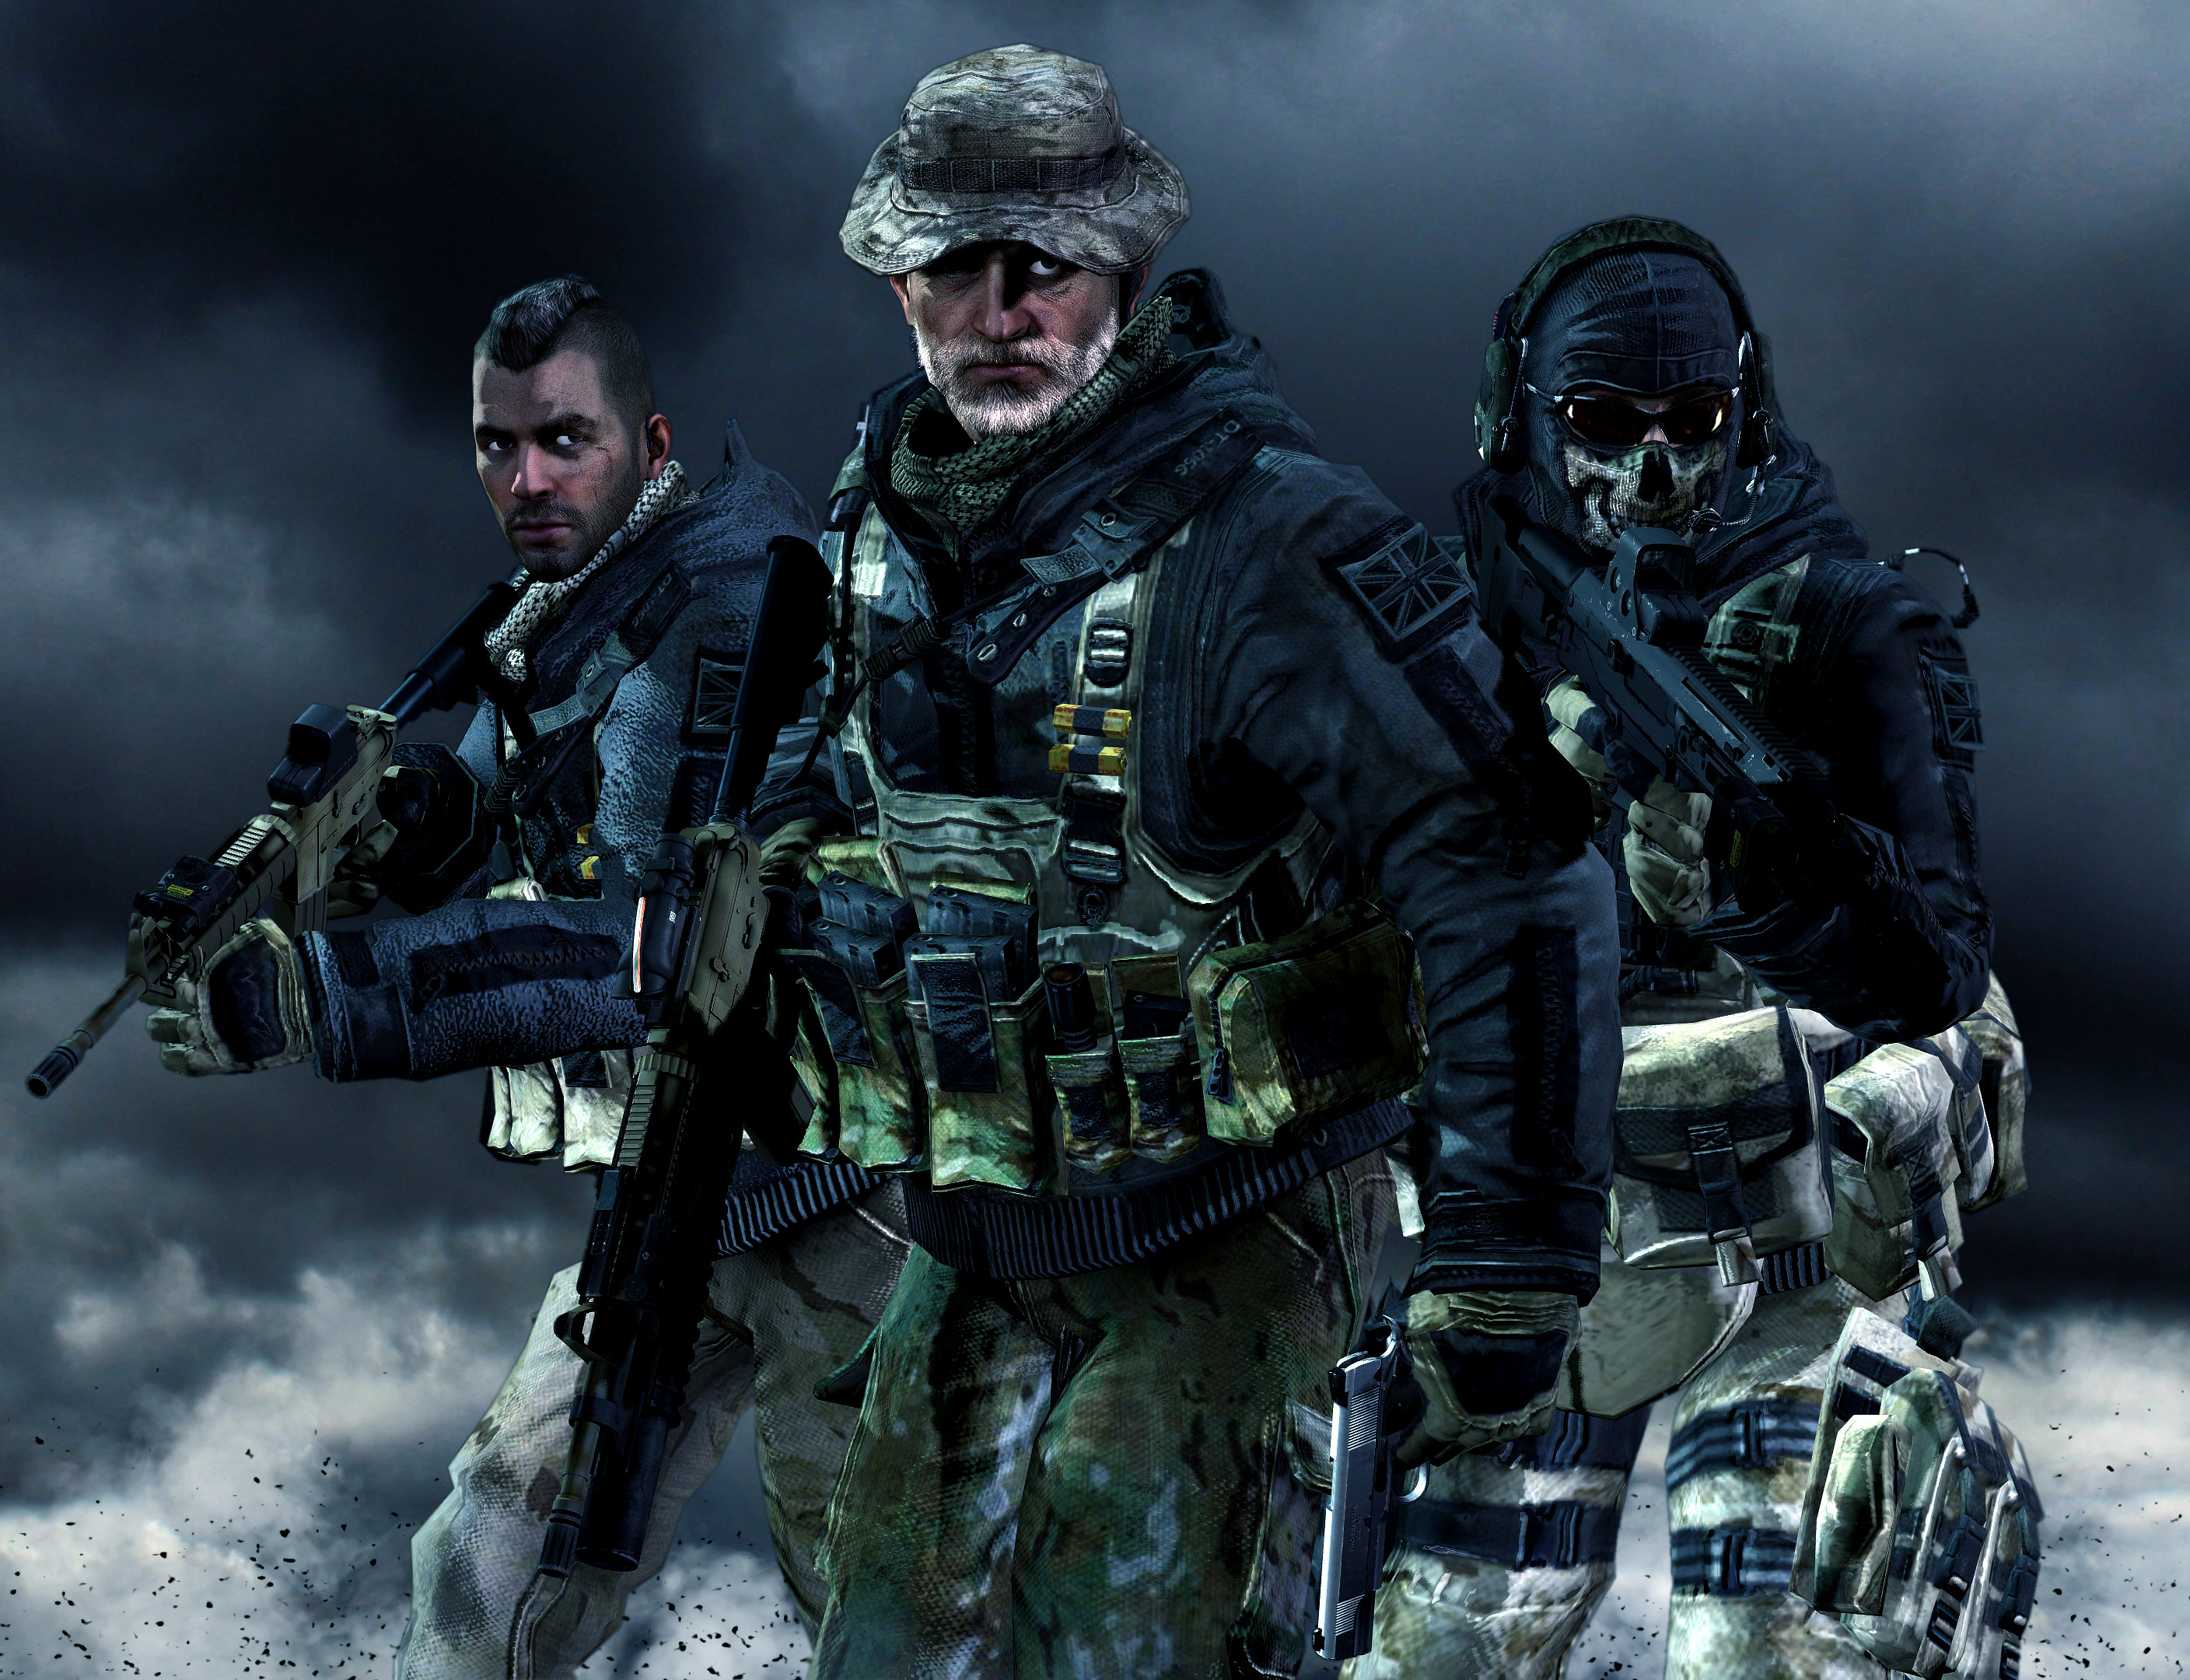 2816x2160 Task Force 141 on Call-of-Duty-Army - DeviantArt